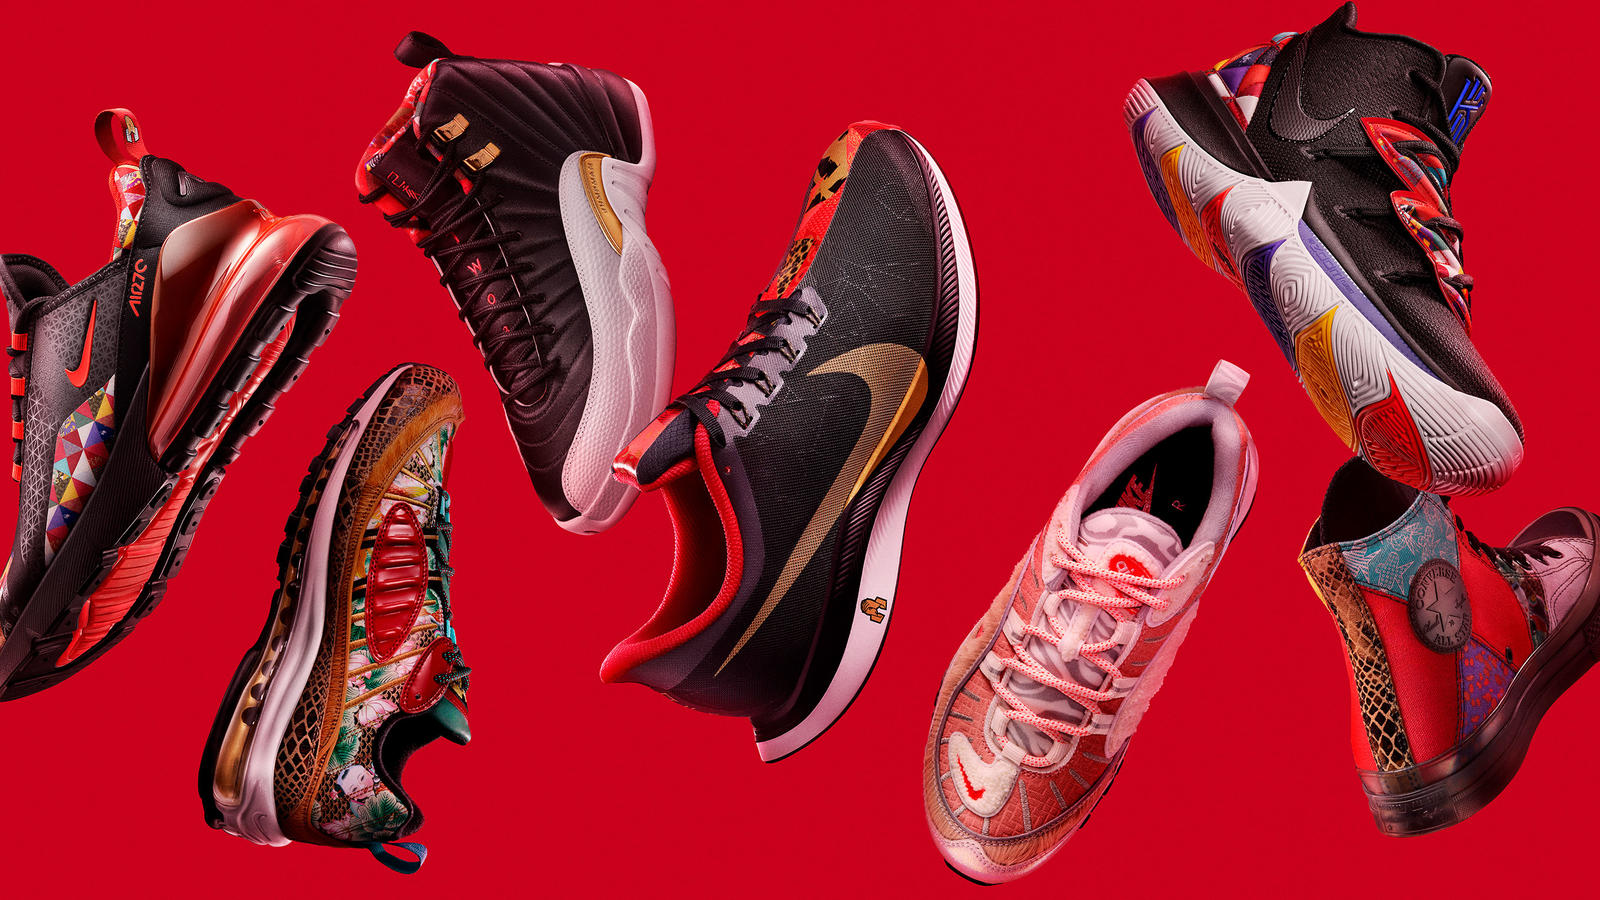 b036cb785 The Year of the Pig Chinese New Year Collection Brings Together 12 Years of  Nike CNY